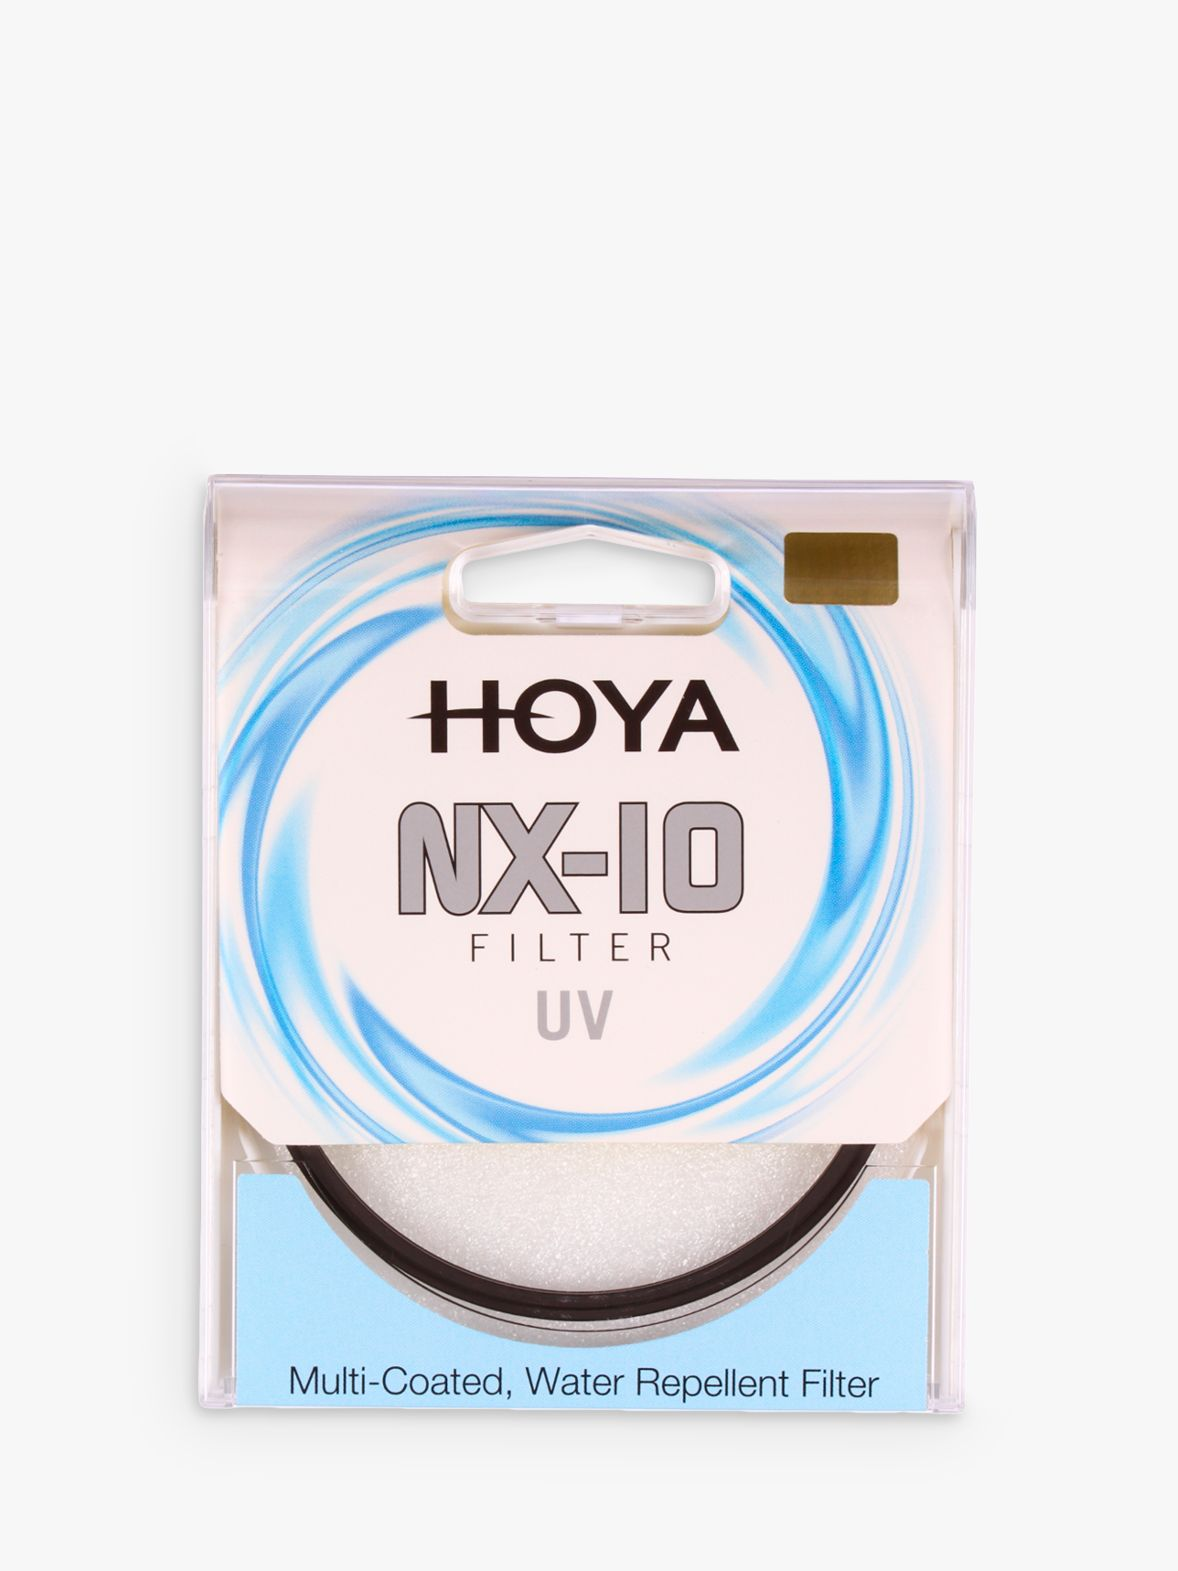 Hoya Hoya NX-10 UV Lens Filter, 55mm